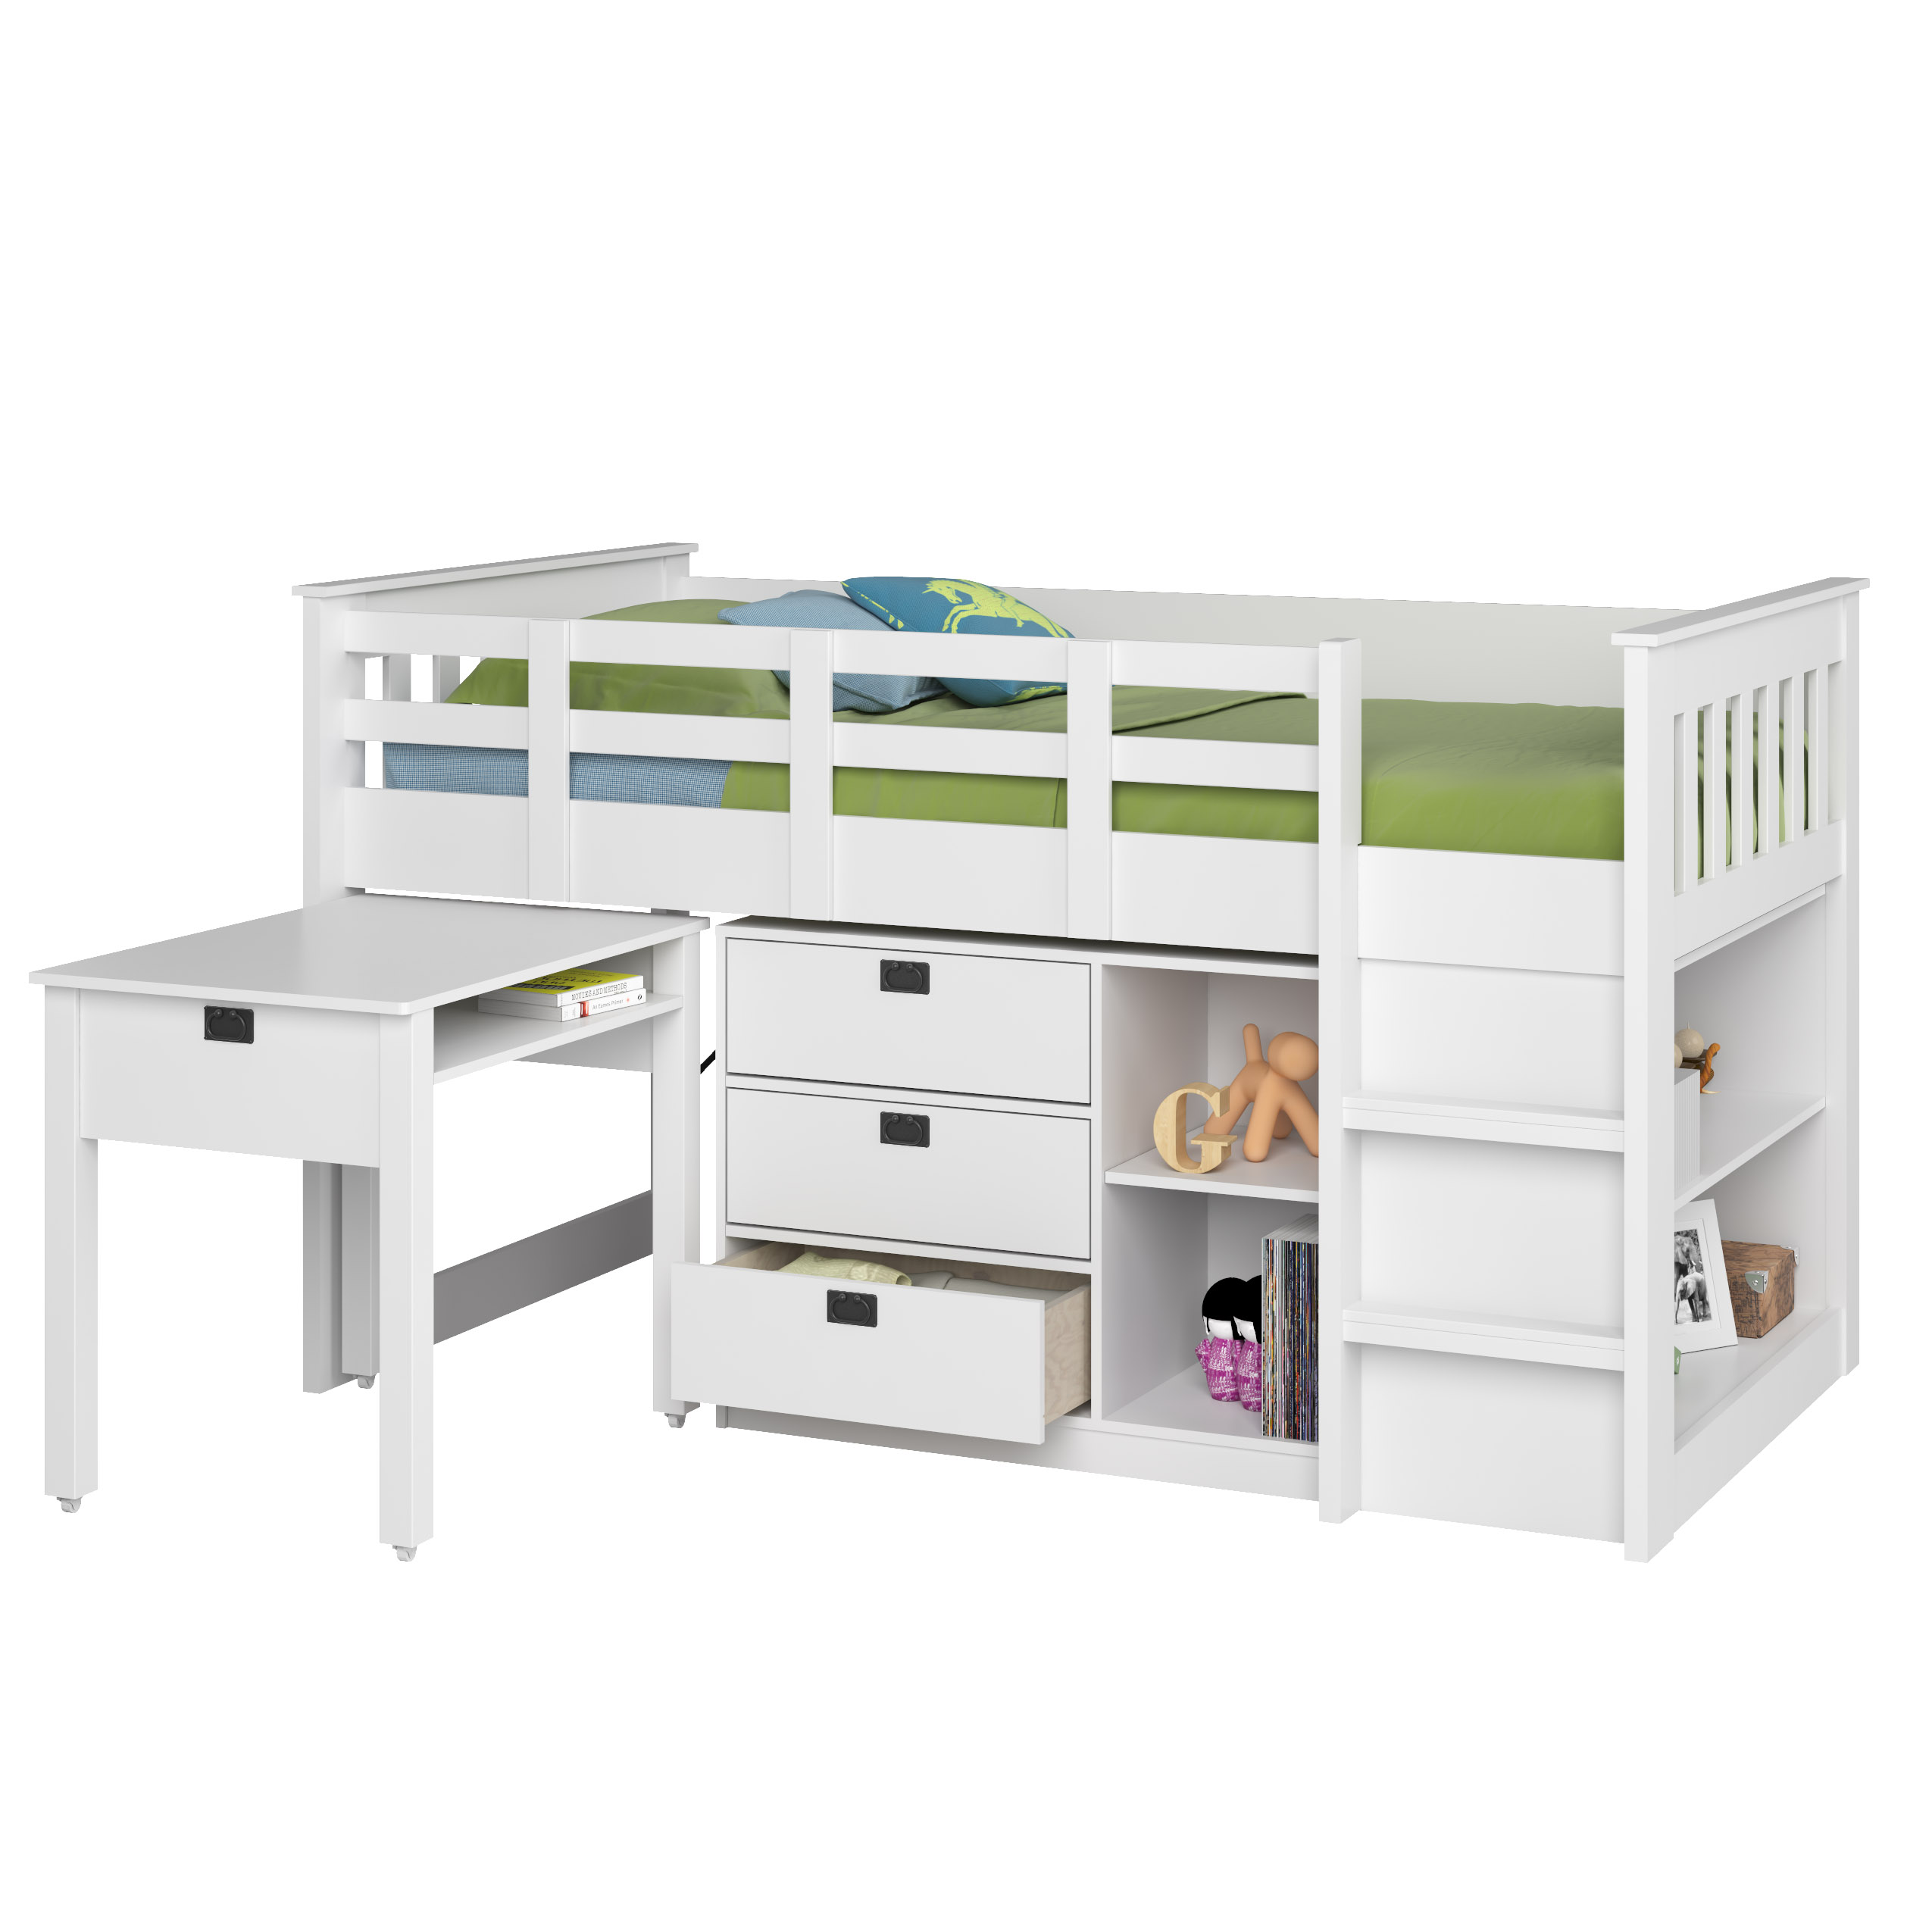 CorLiving Madison Single/Twin Loft Bed with Desk and Storage - White